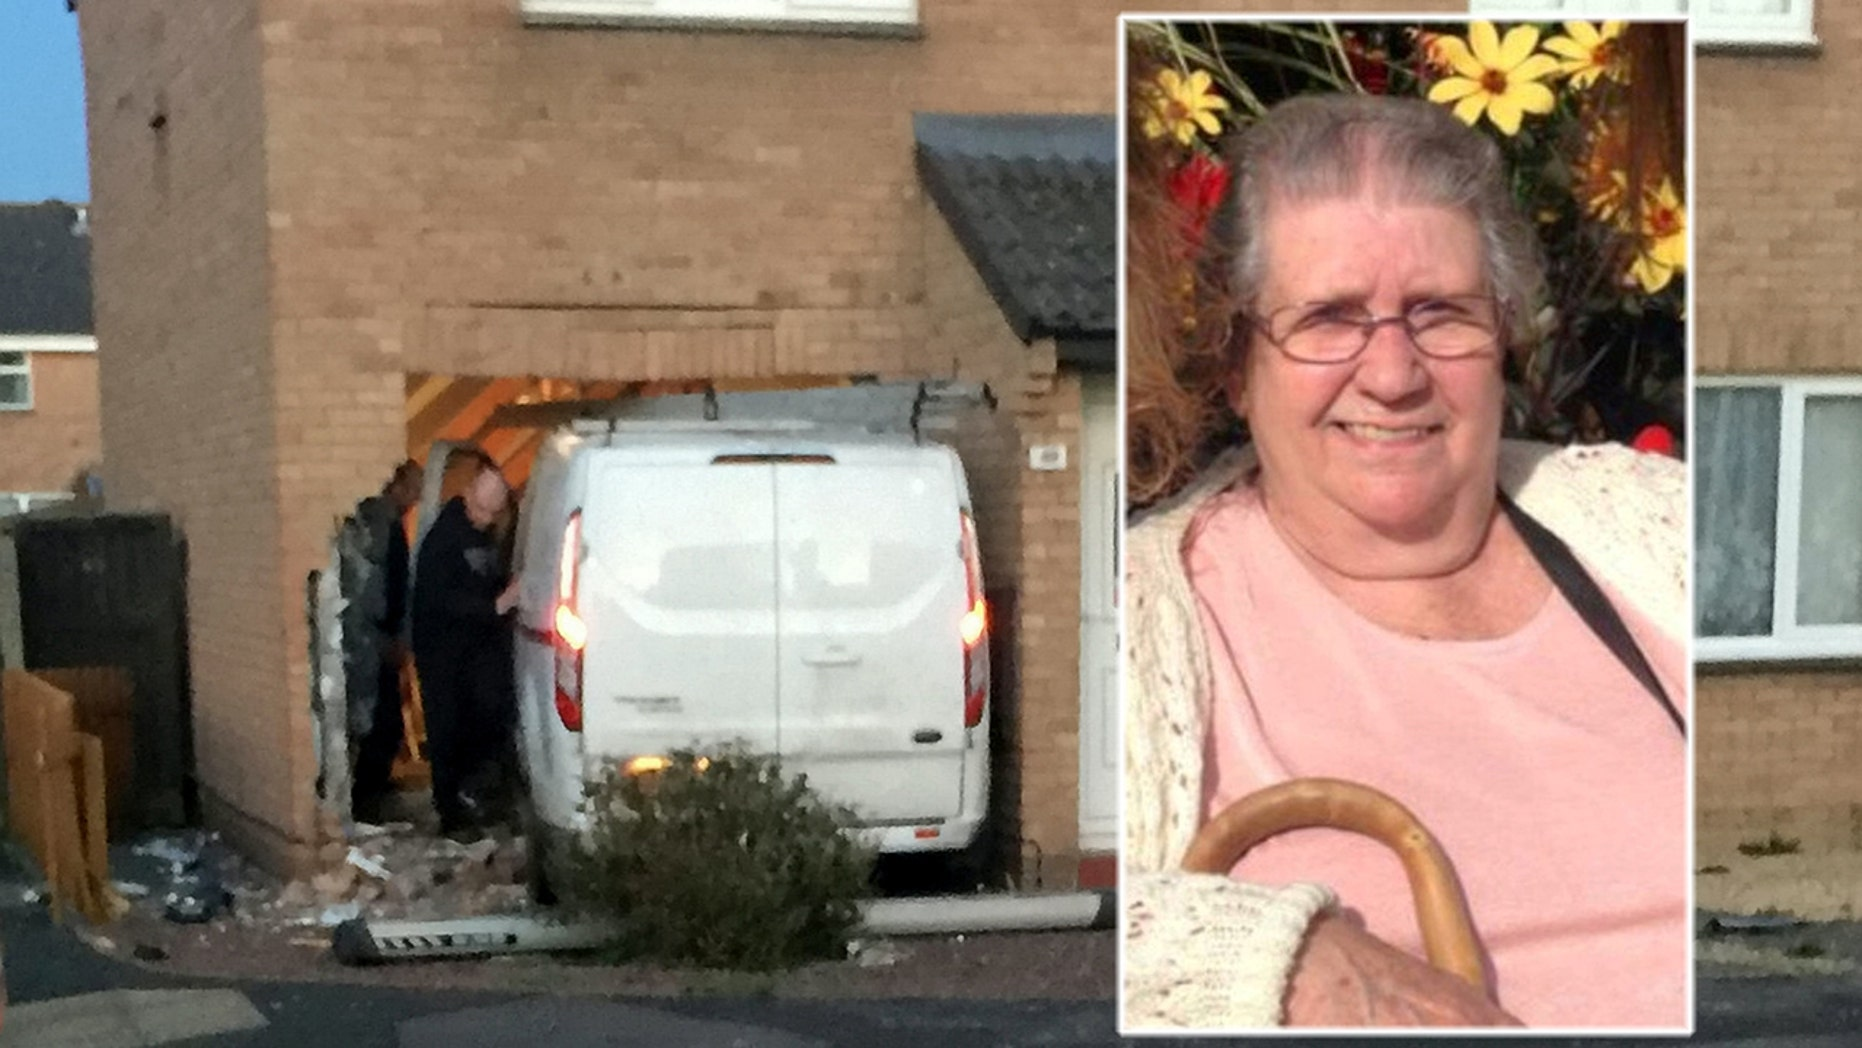 Relatives provided a photo of Joan Woodier, who was killed when a van crashed into her home.